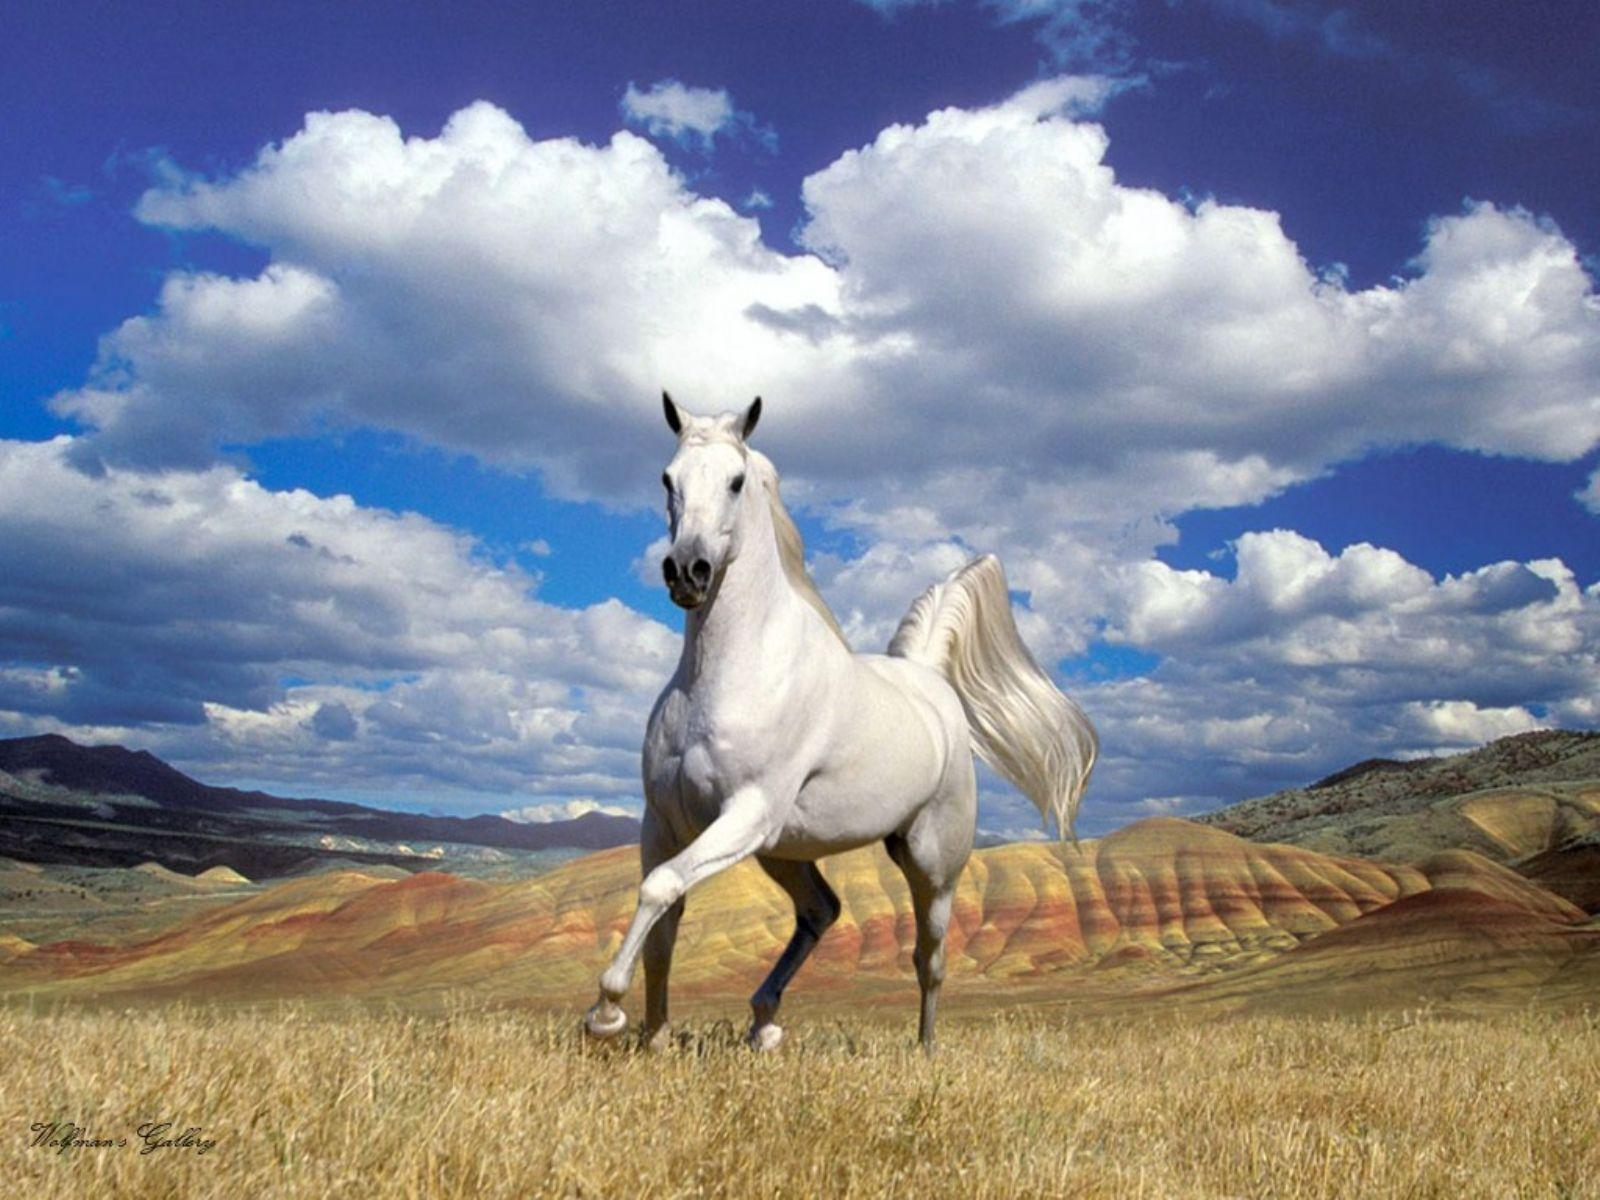 Appaloosa Horse Wallpapers | Pictures of Appaloosa Horses | Cool ...